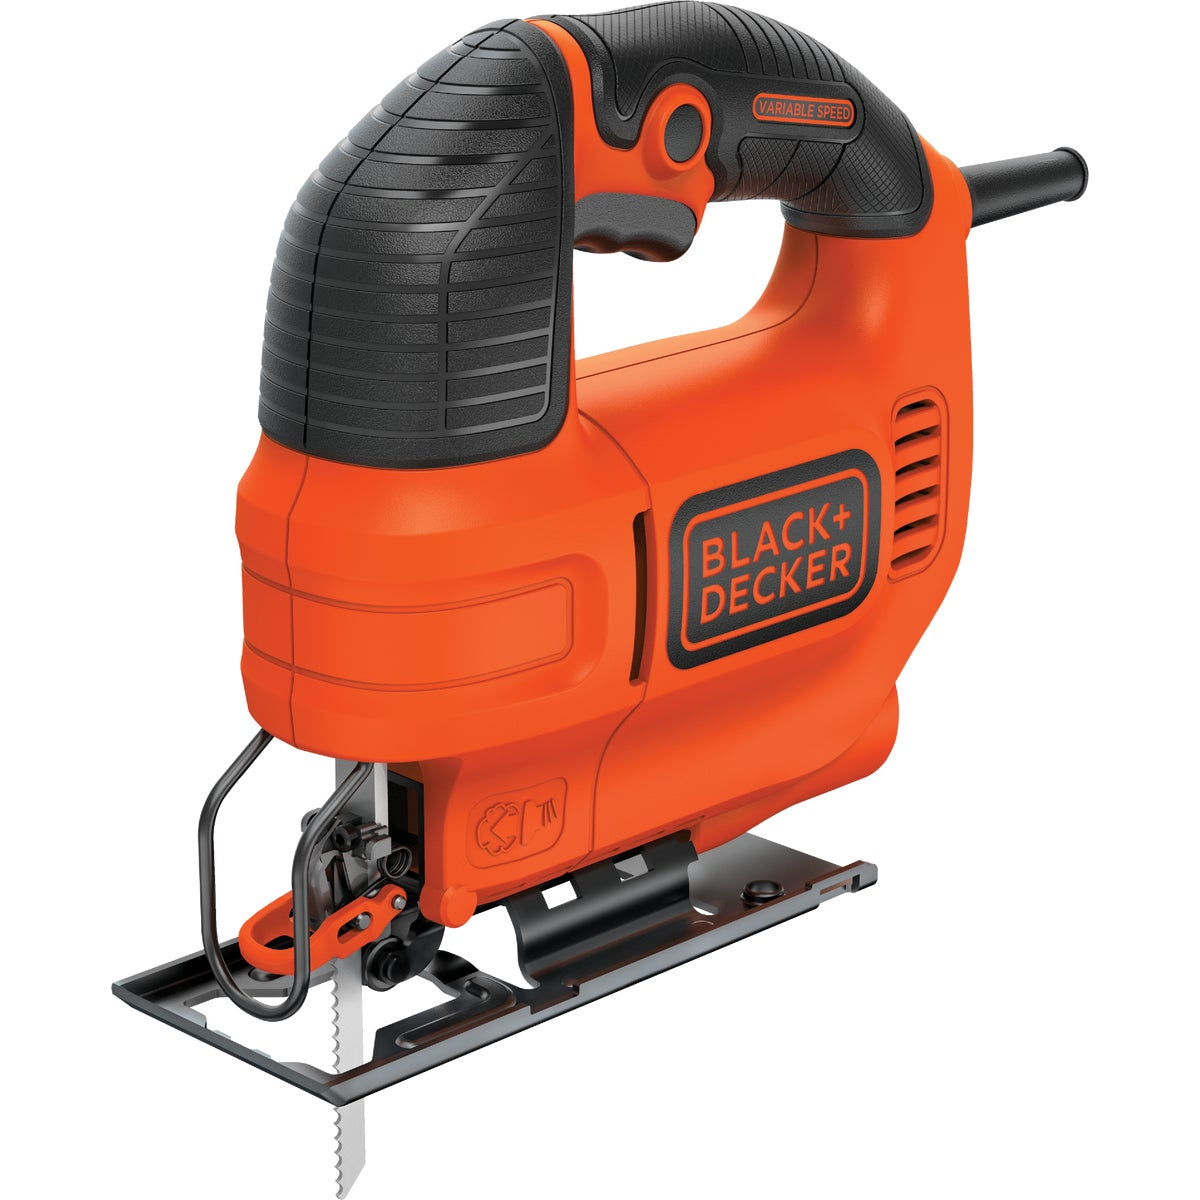 4.5A VS JIGSAW - JS515 by Black & Decker